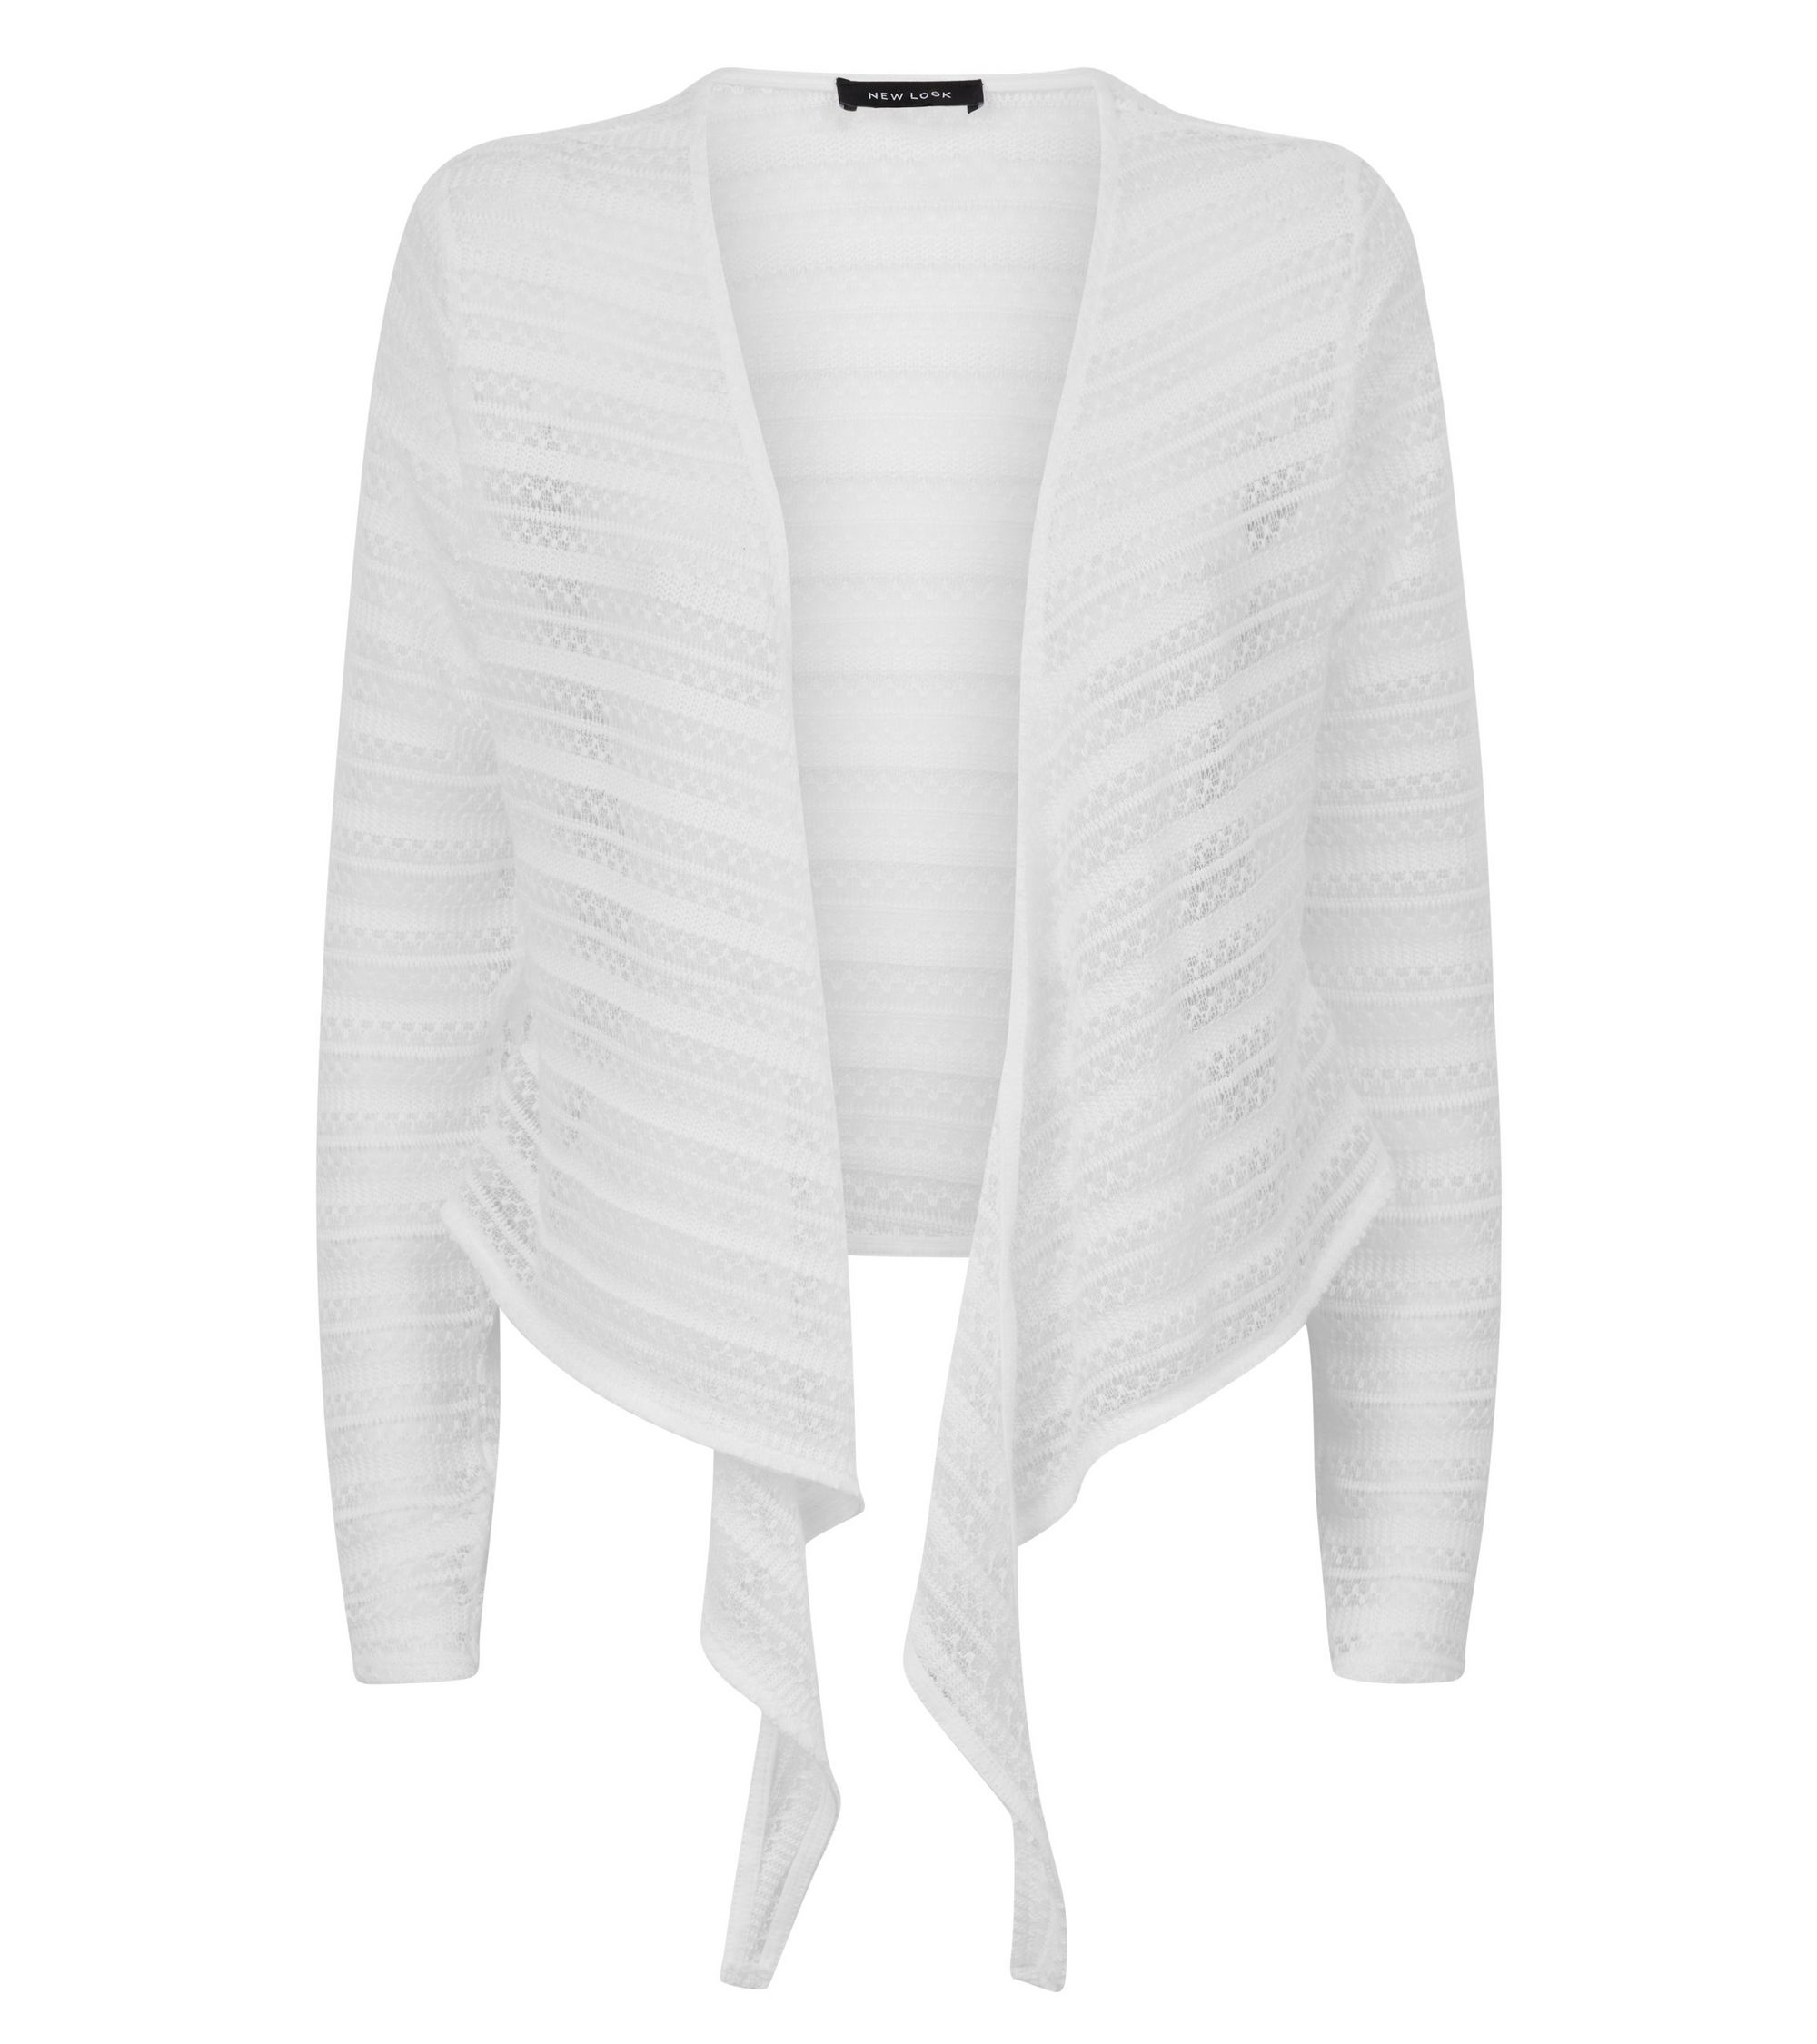 8d64ba1609b75 New Look Off White Pointelle Stripe Tie Front Crop Top at £6